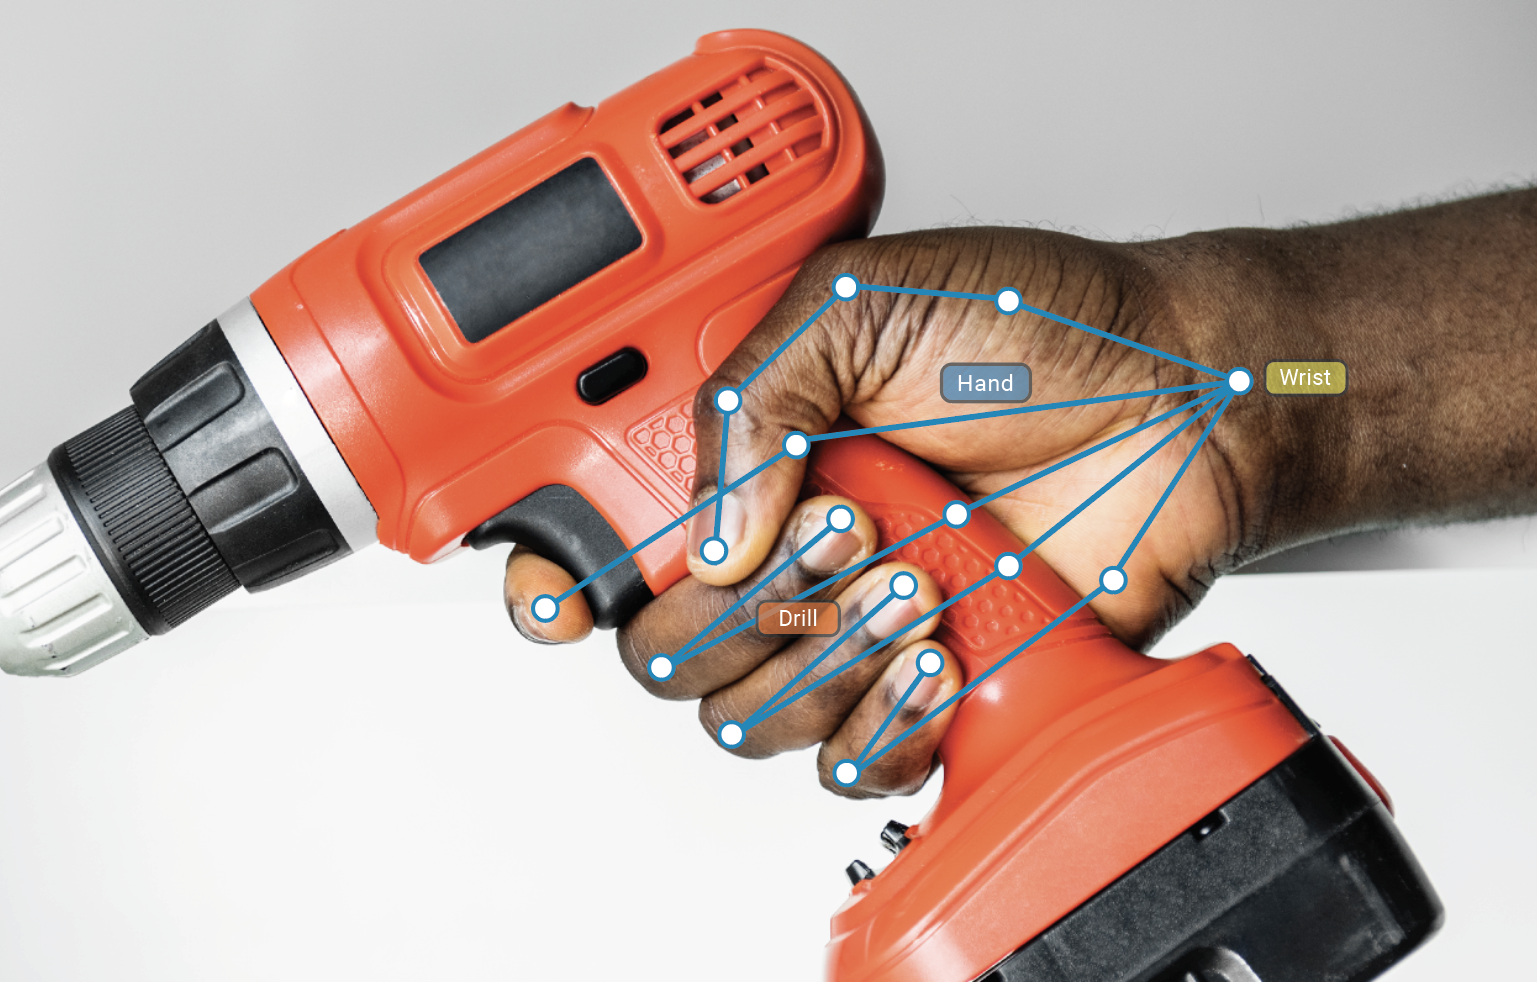 A company was using computer vision to build analytics solutions and needed to acquire a dataset of objects being held by human hands. The image shows a person's right hand holding a cordless drilling tool. The hand and each finger are annotated to indicate where the hand is grasping the tool.